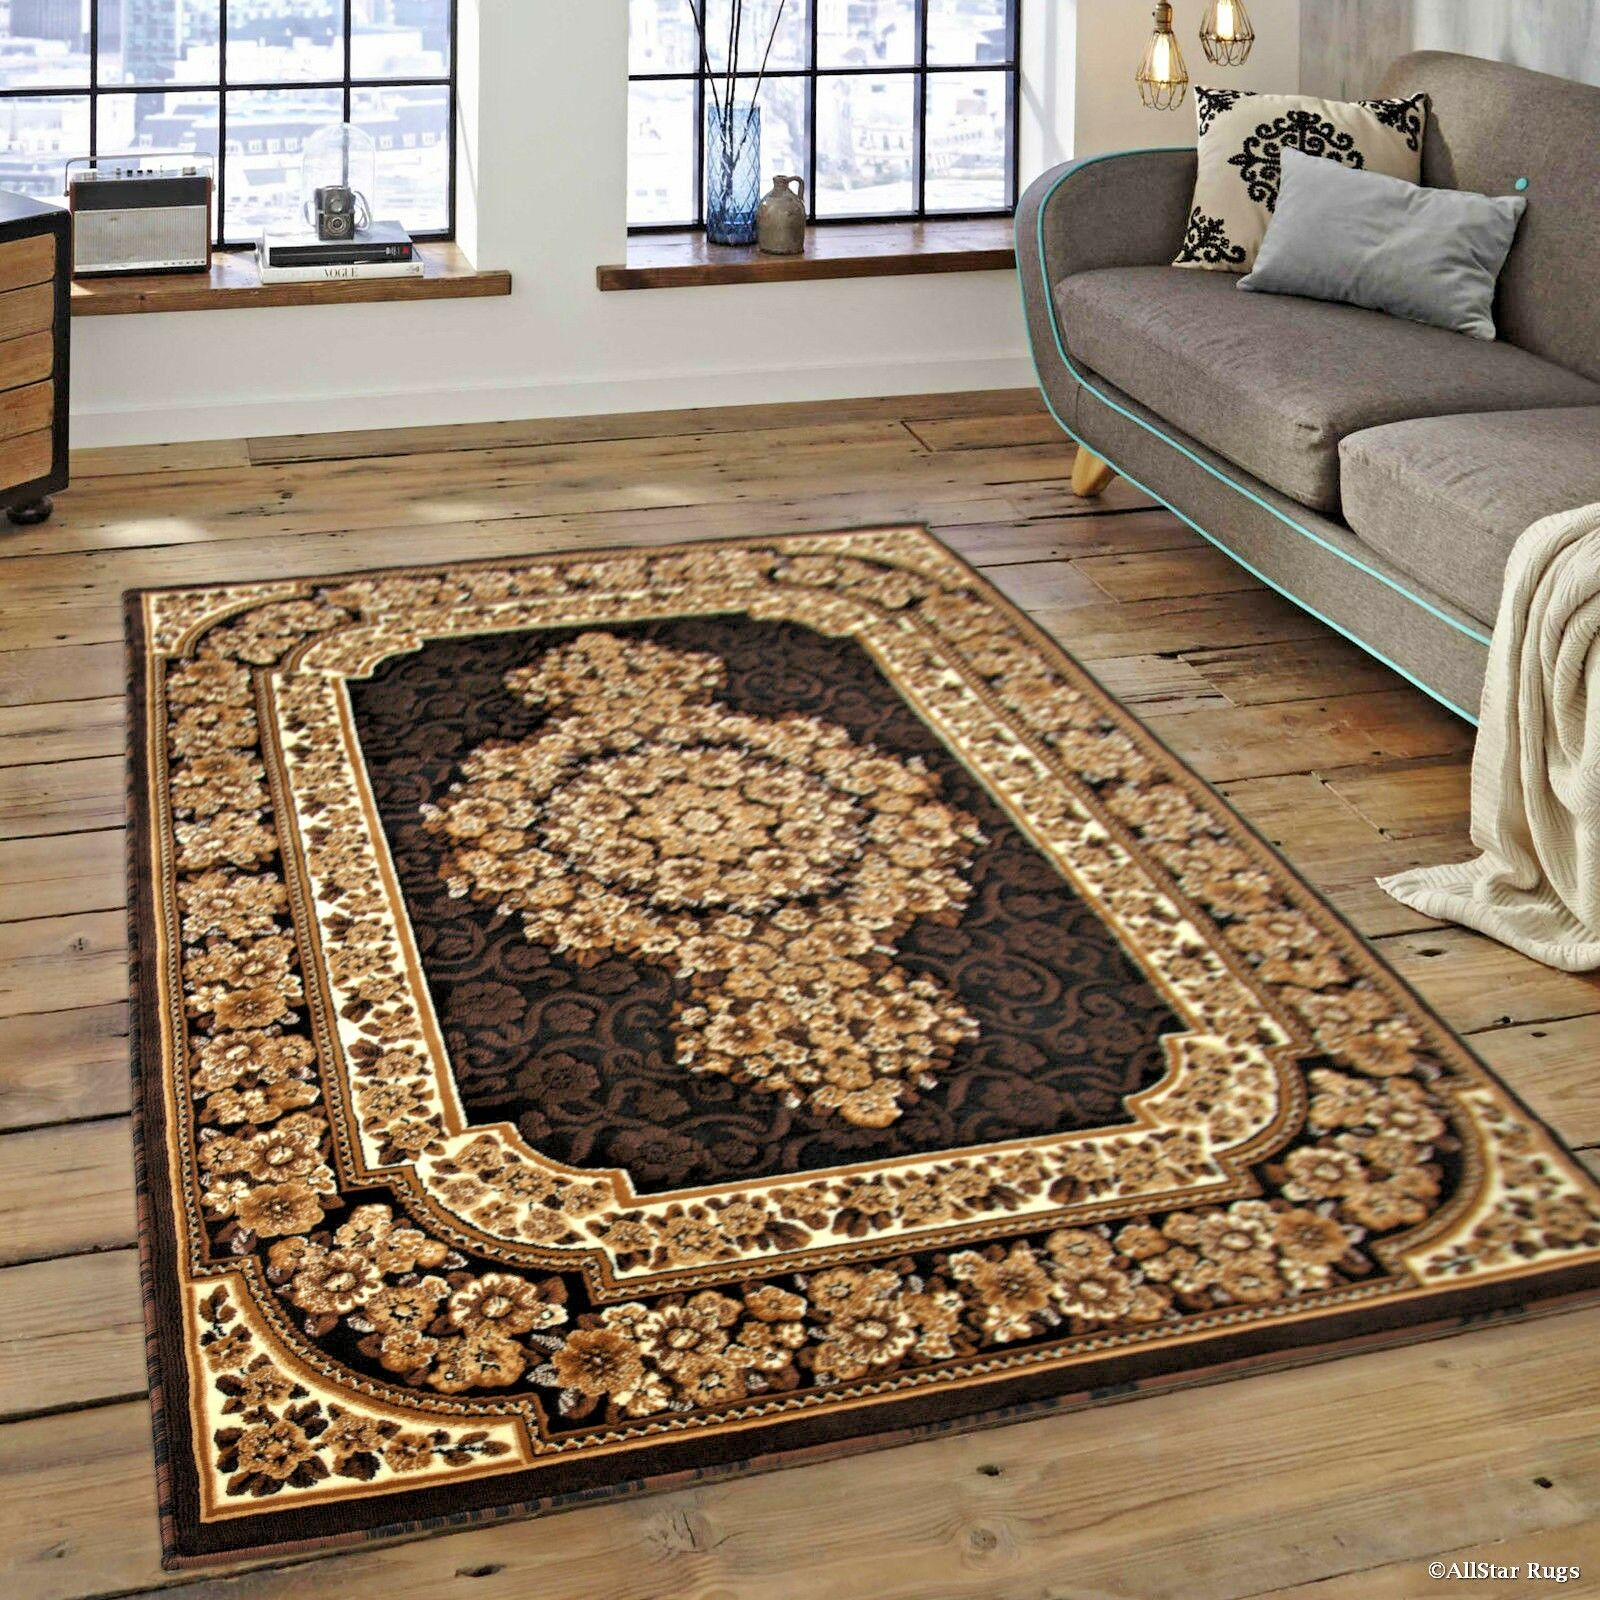 How Big Is 8x10 Rug.Details About Rugs Area Rugs Carpets 8x10 Rug Persian Oriental Large Floor Big Black 5x7 Rugs